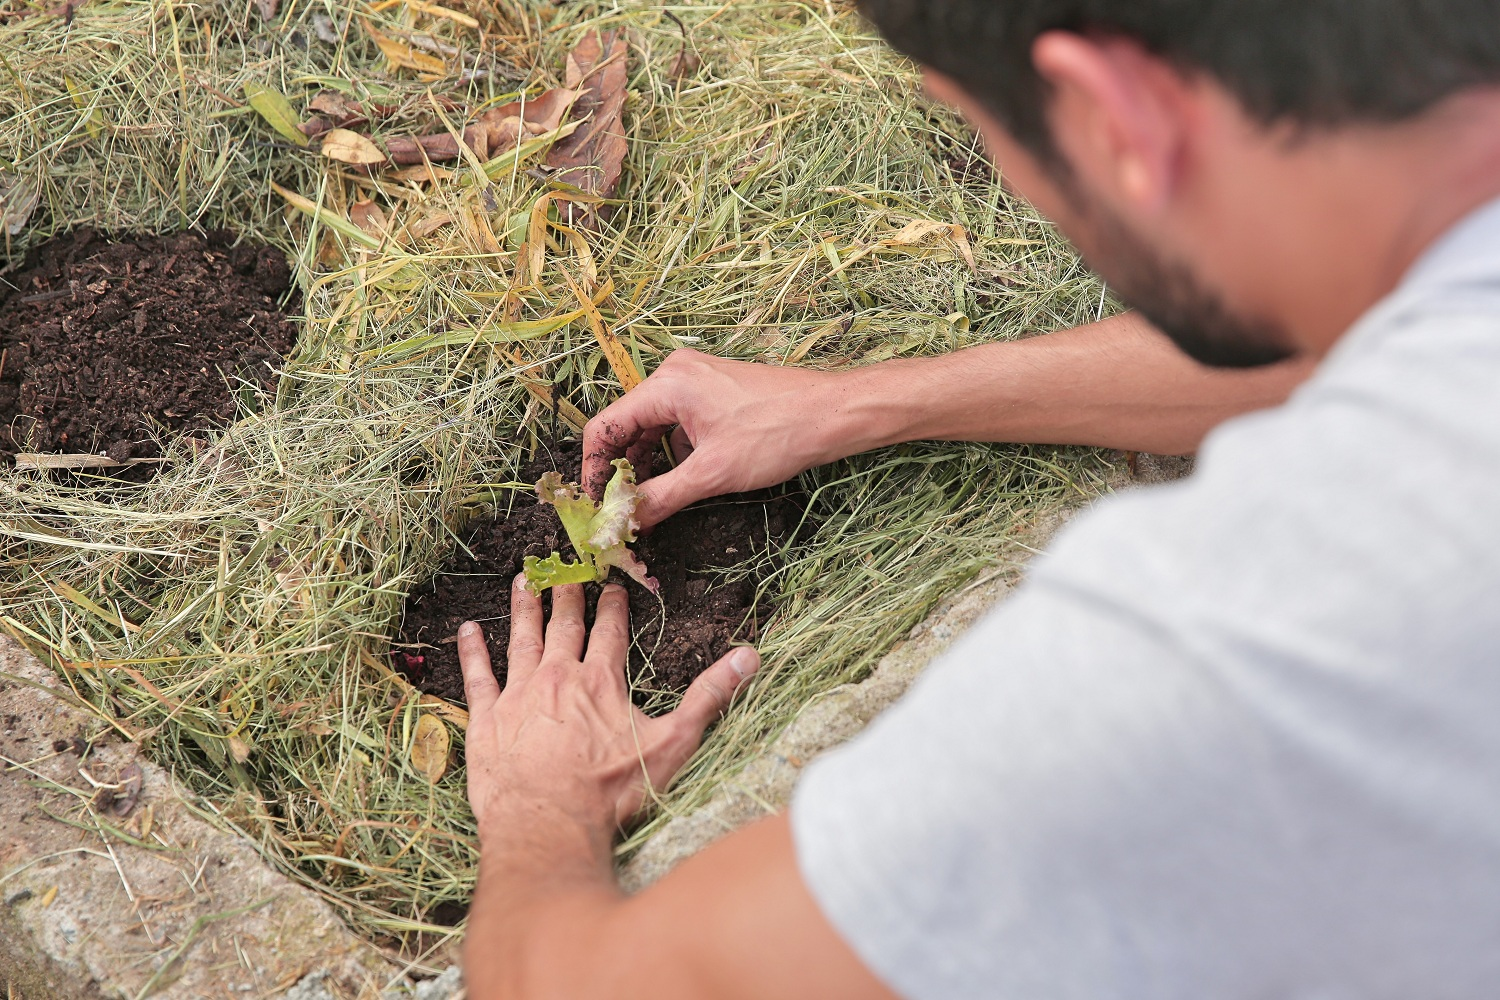 A view from above, in close-up, of a man planting a seedling in a mound of dark soil, surrounded by grass. The picture shows only part of his back and arms, as well as the back of his neck and part of his face.